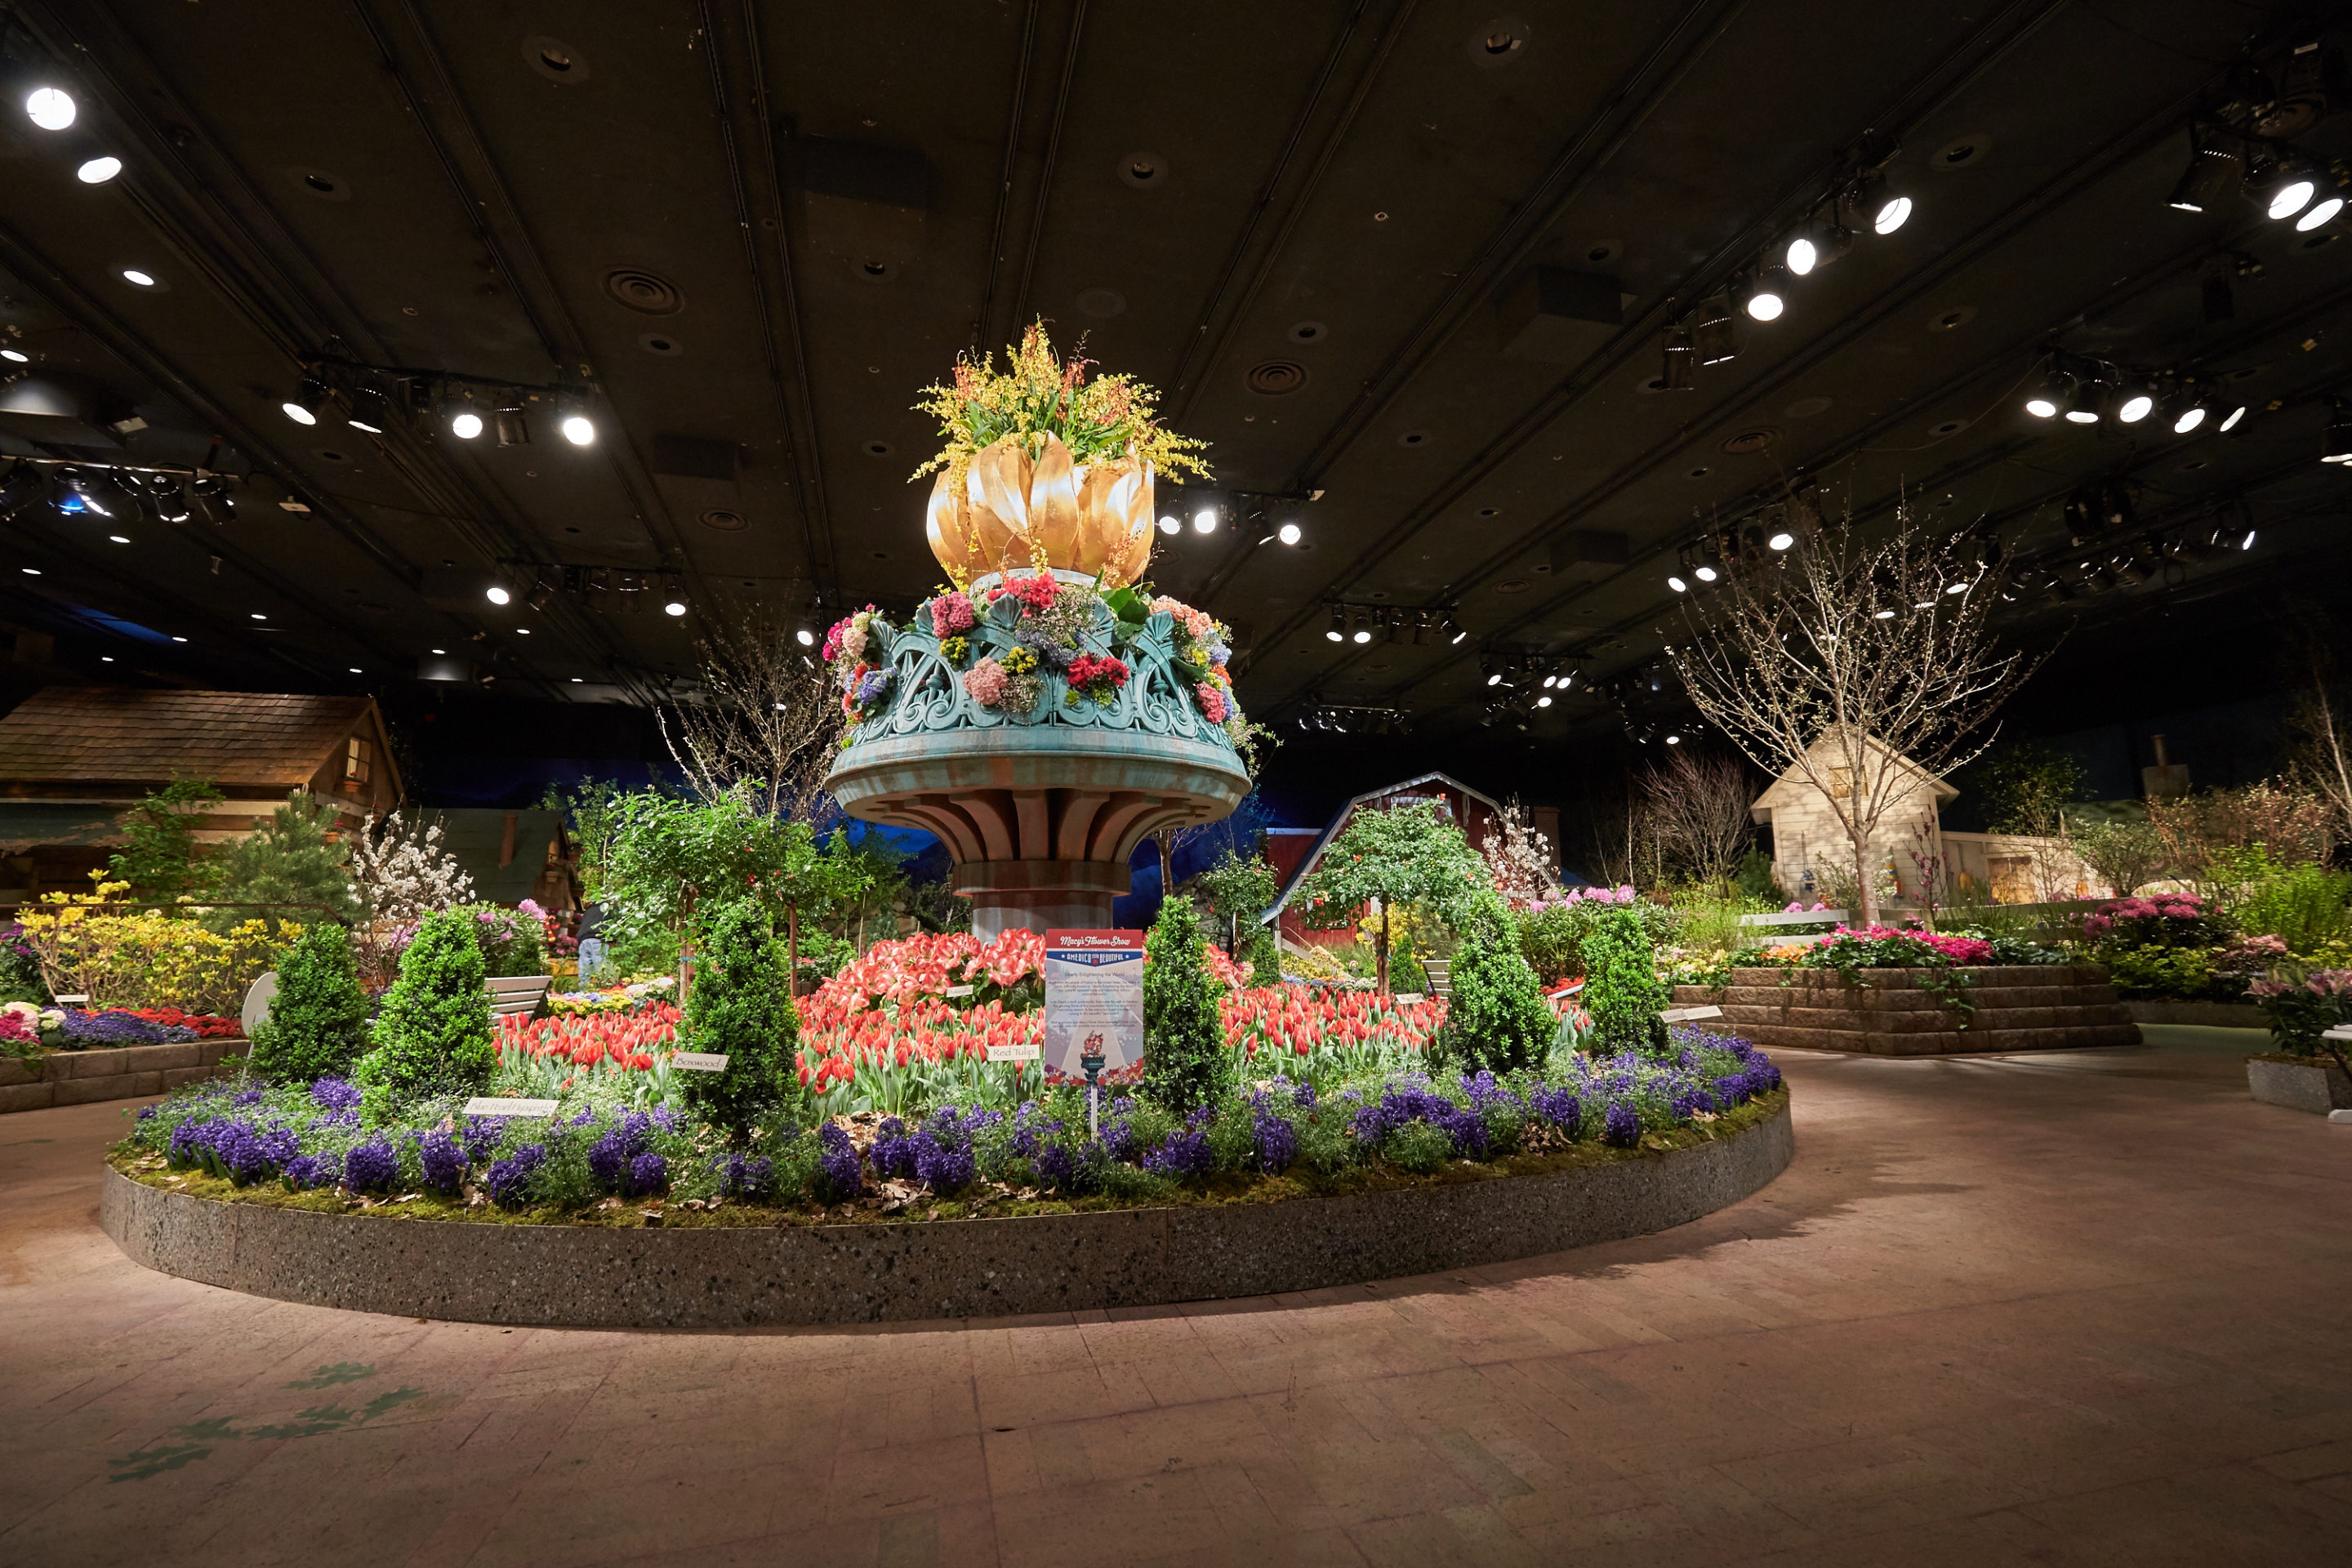 Macys Flower Show 2020.Macy S Flower Show Blooms With All American Splendor